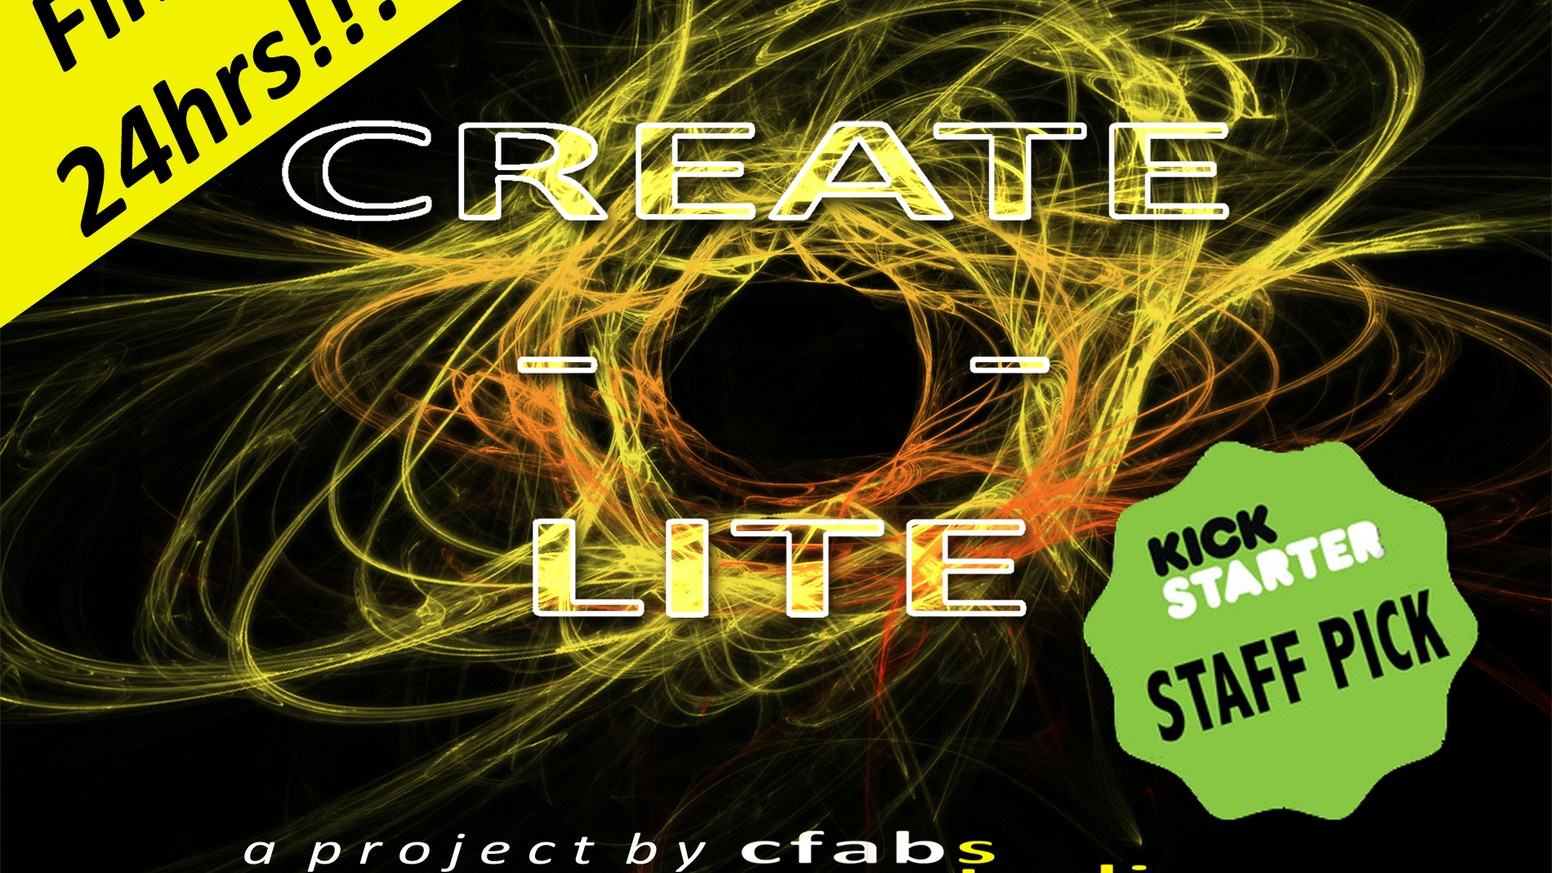 10 Clever Creative Shared Bedrooms Part 2: LED Create-O-Lite: The Creative Lighting Solution By Cfab